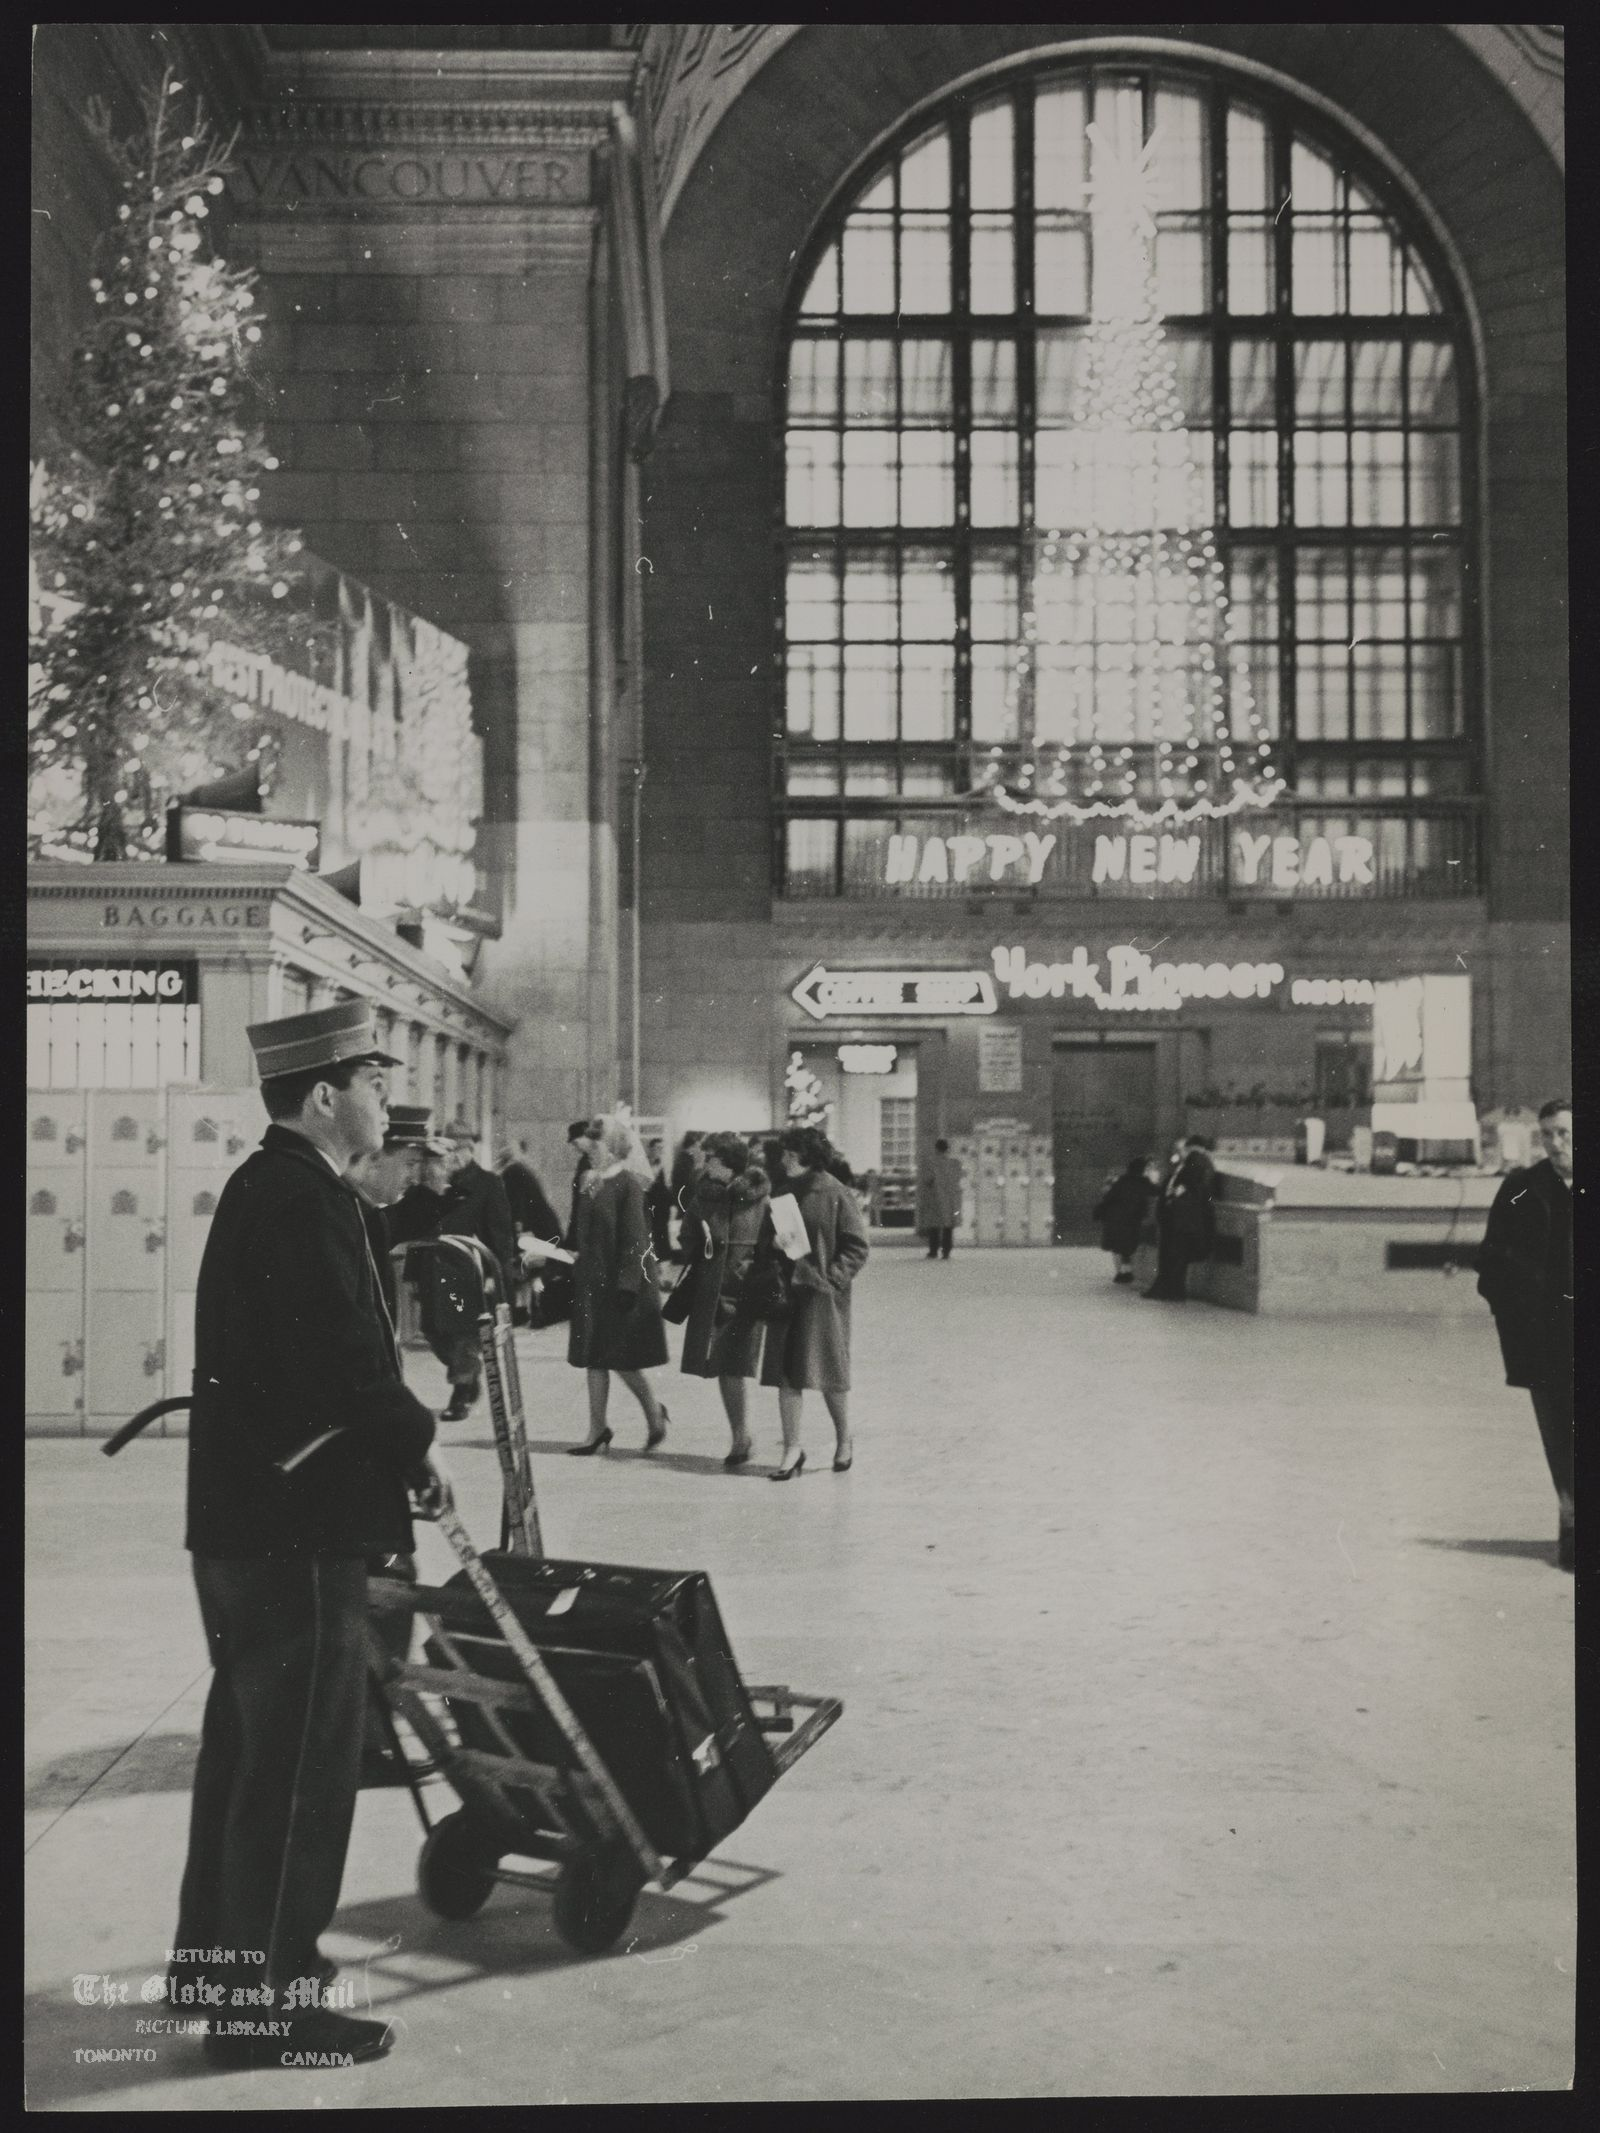 The notes transcribed from the back of this photograph are as follows: UNION STATION (Toronto) December 1963. no cutline information